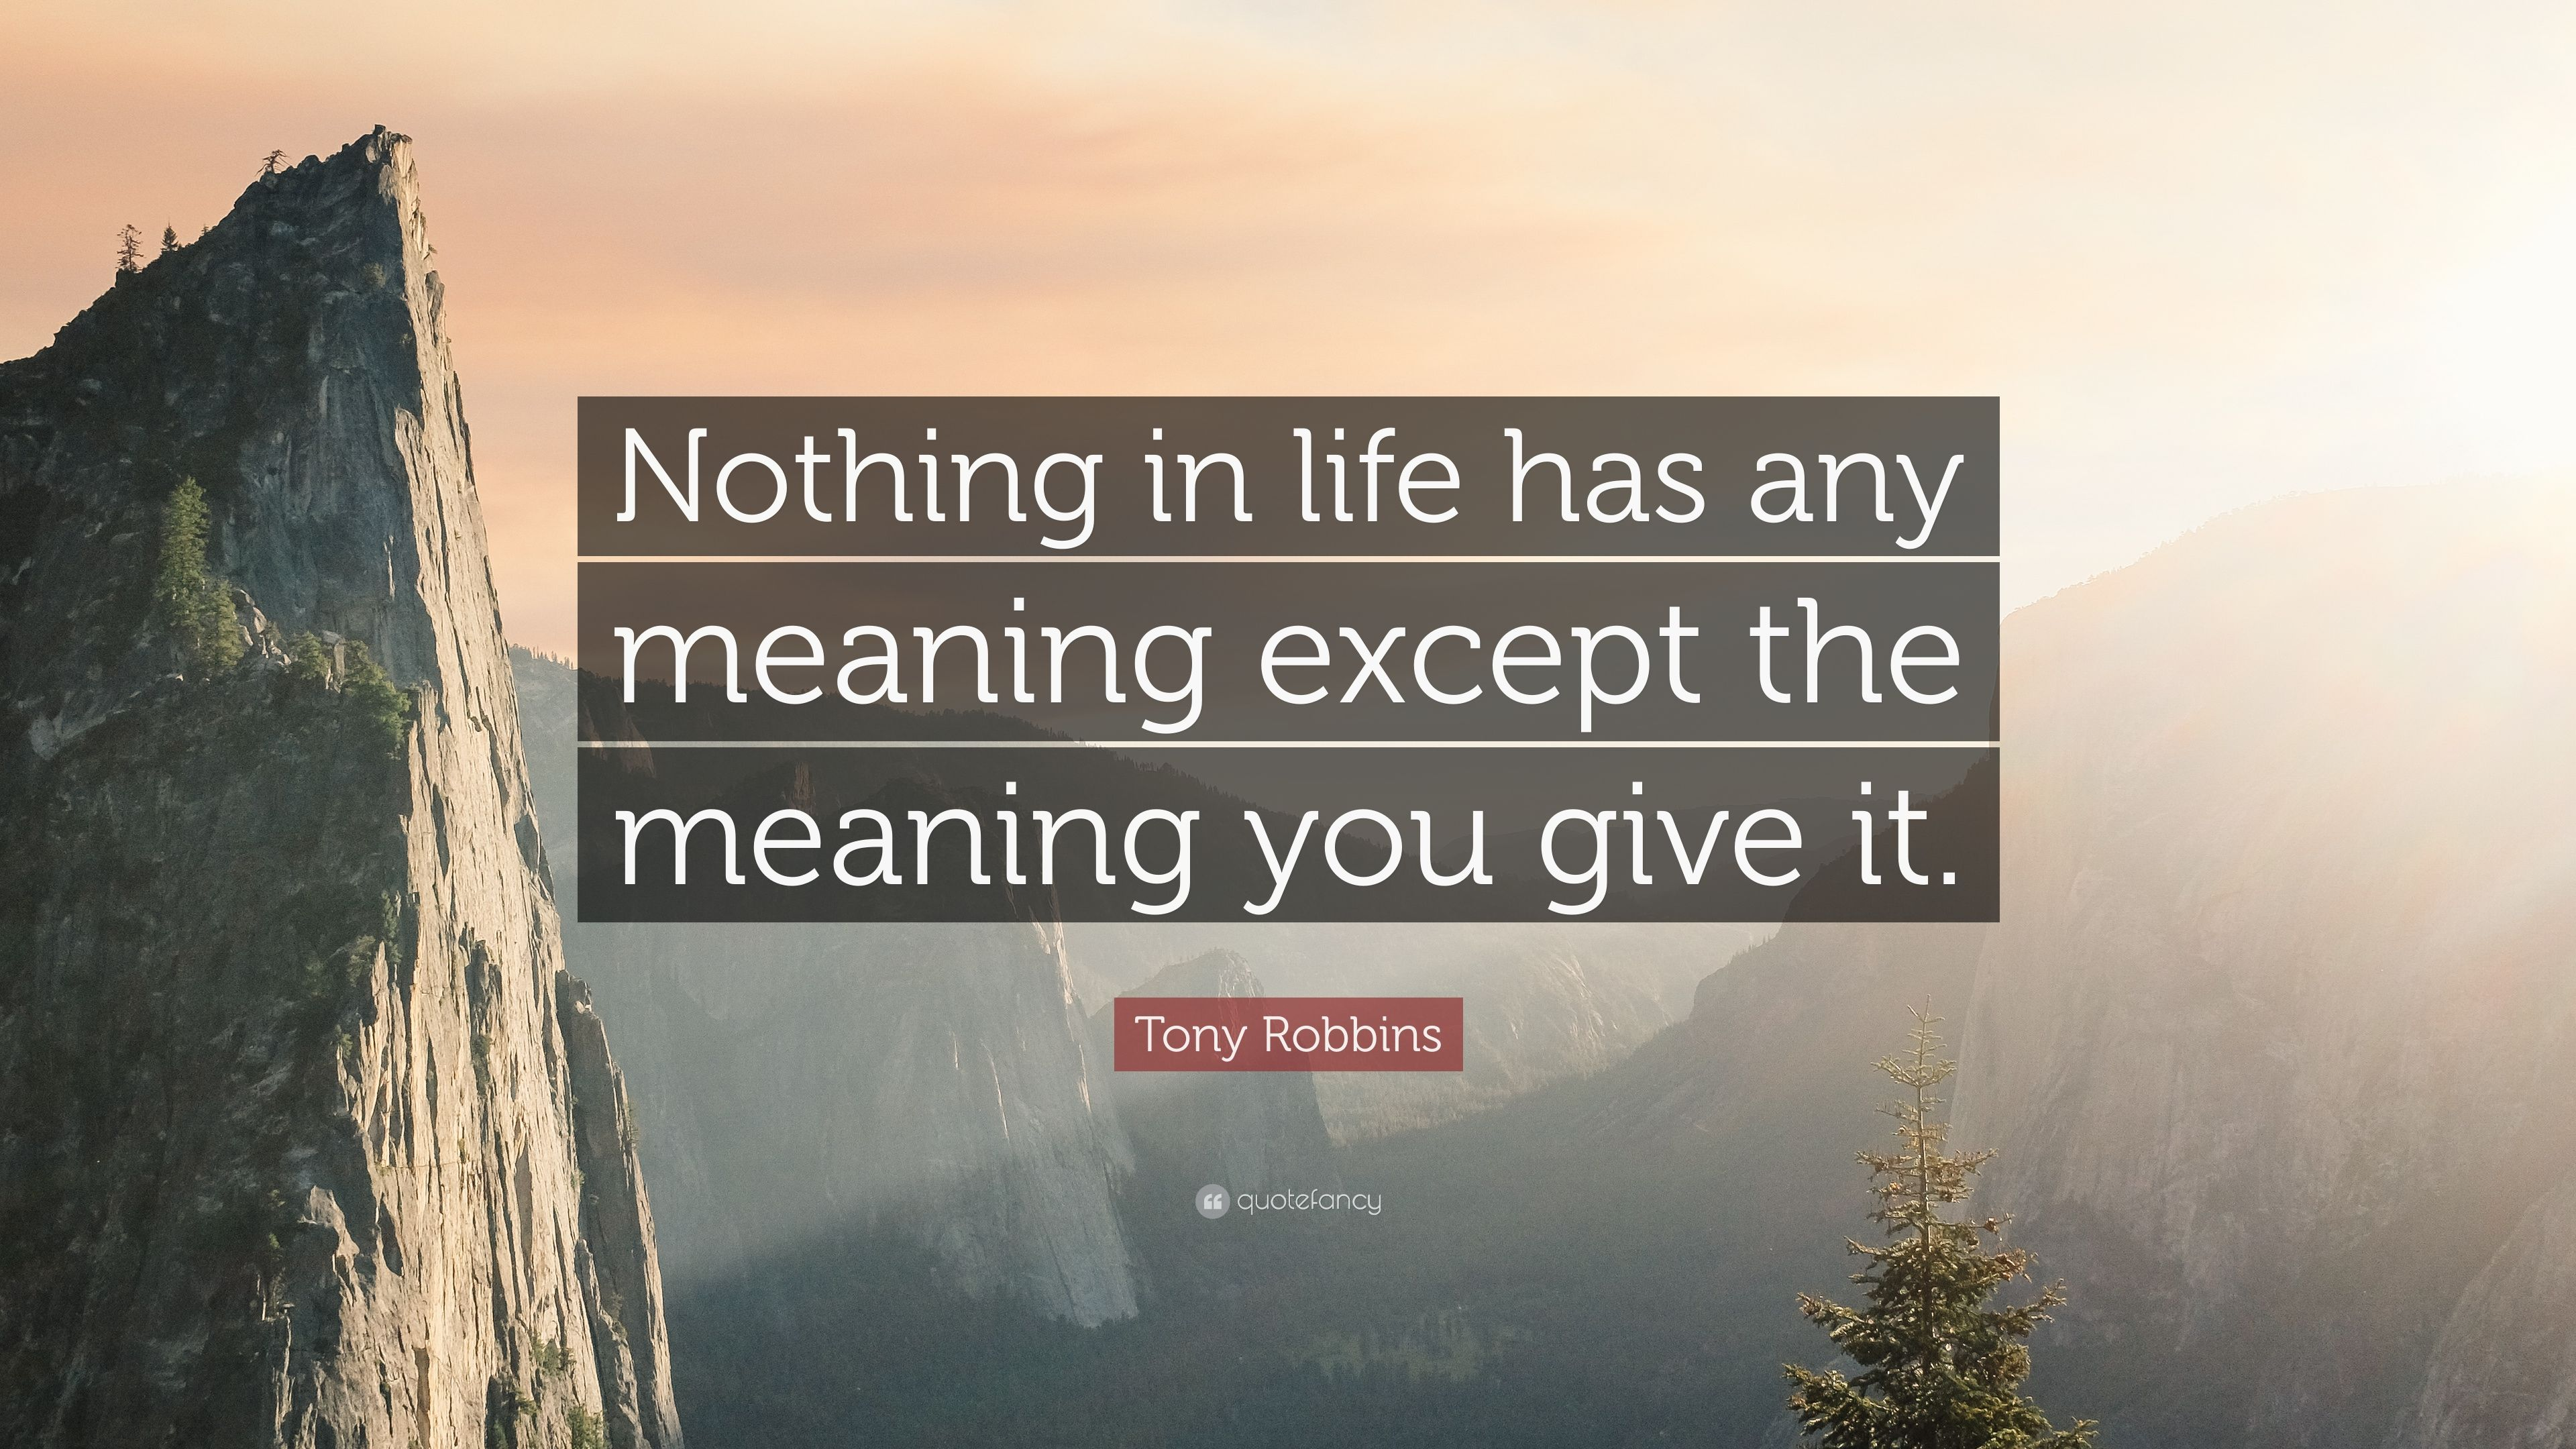 Nothing has meaning